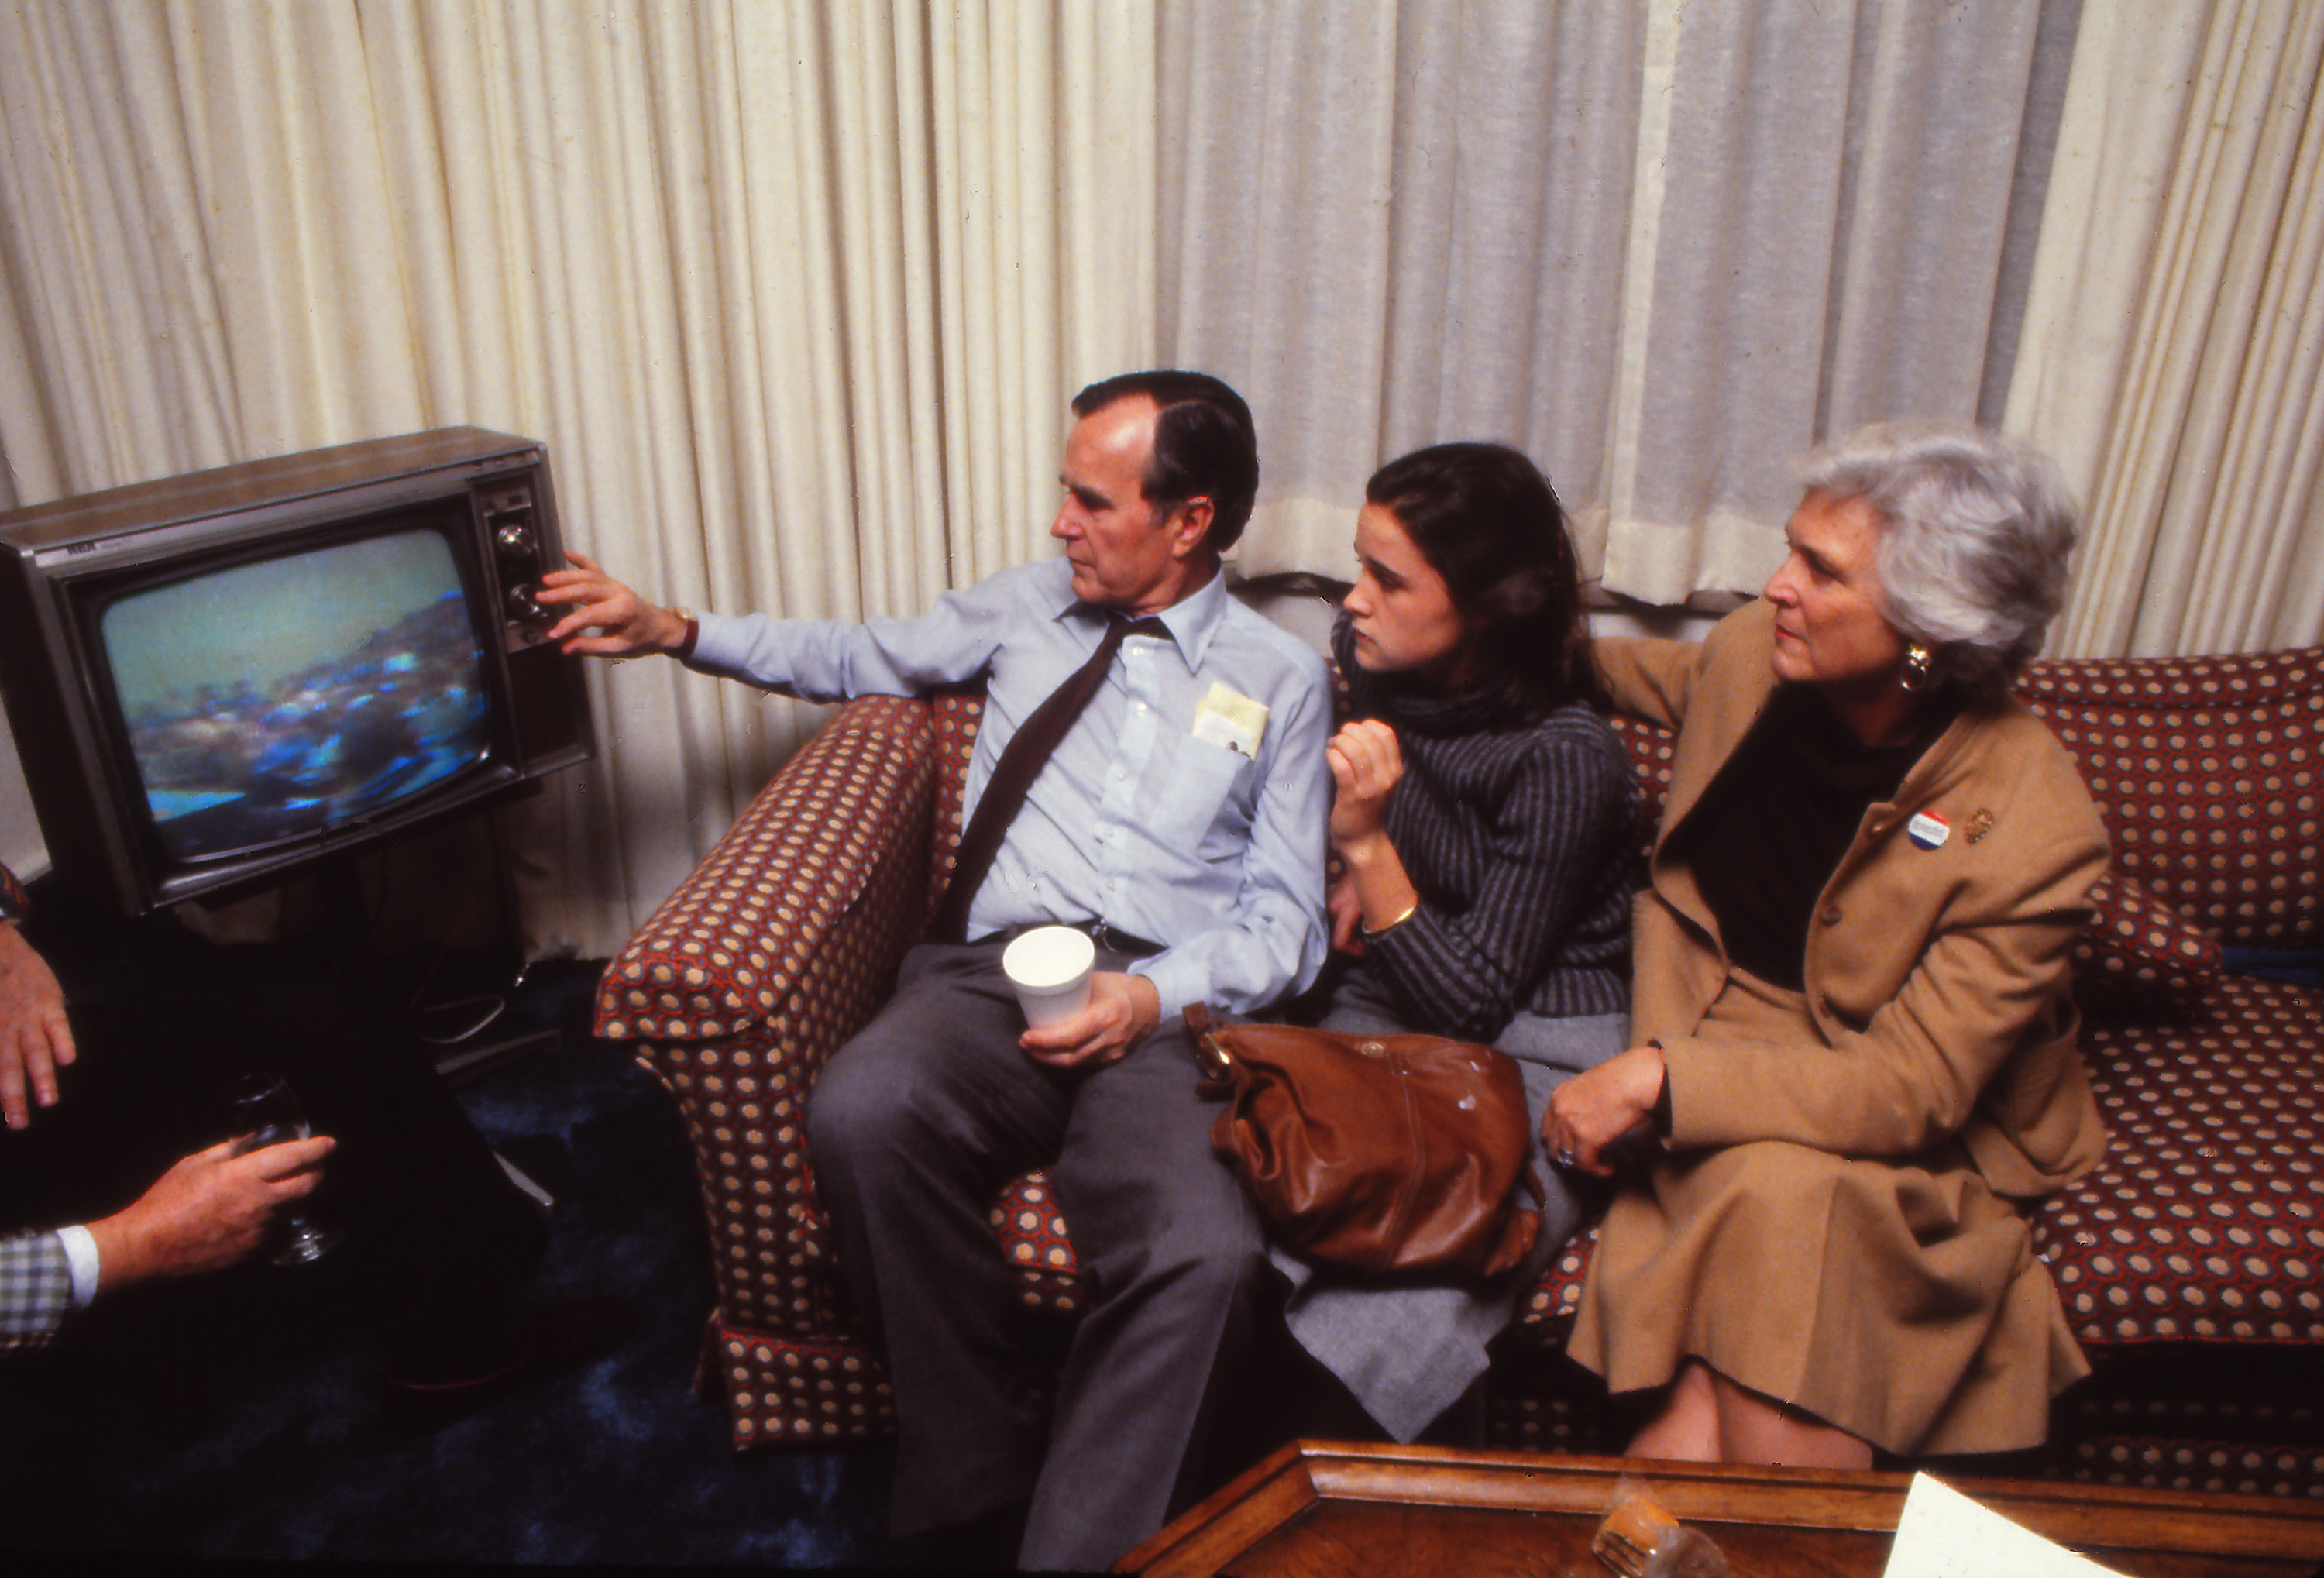 George Bush and family watching television